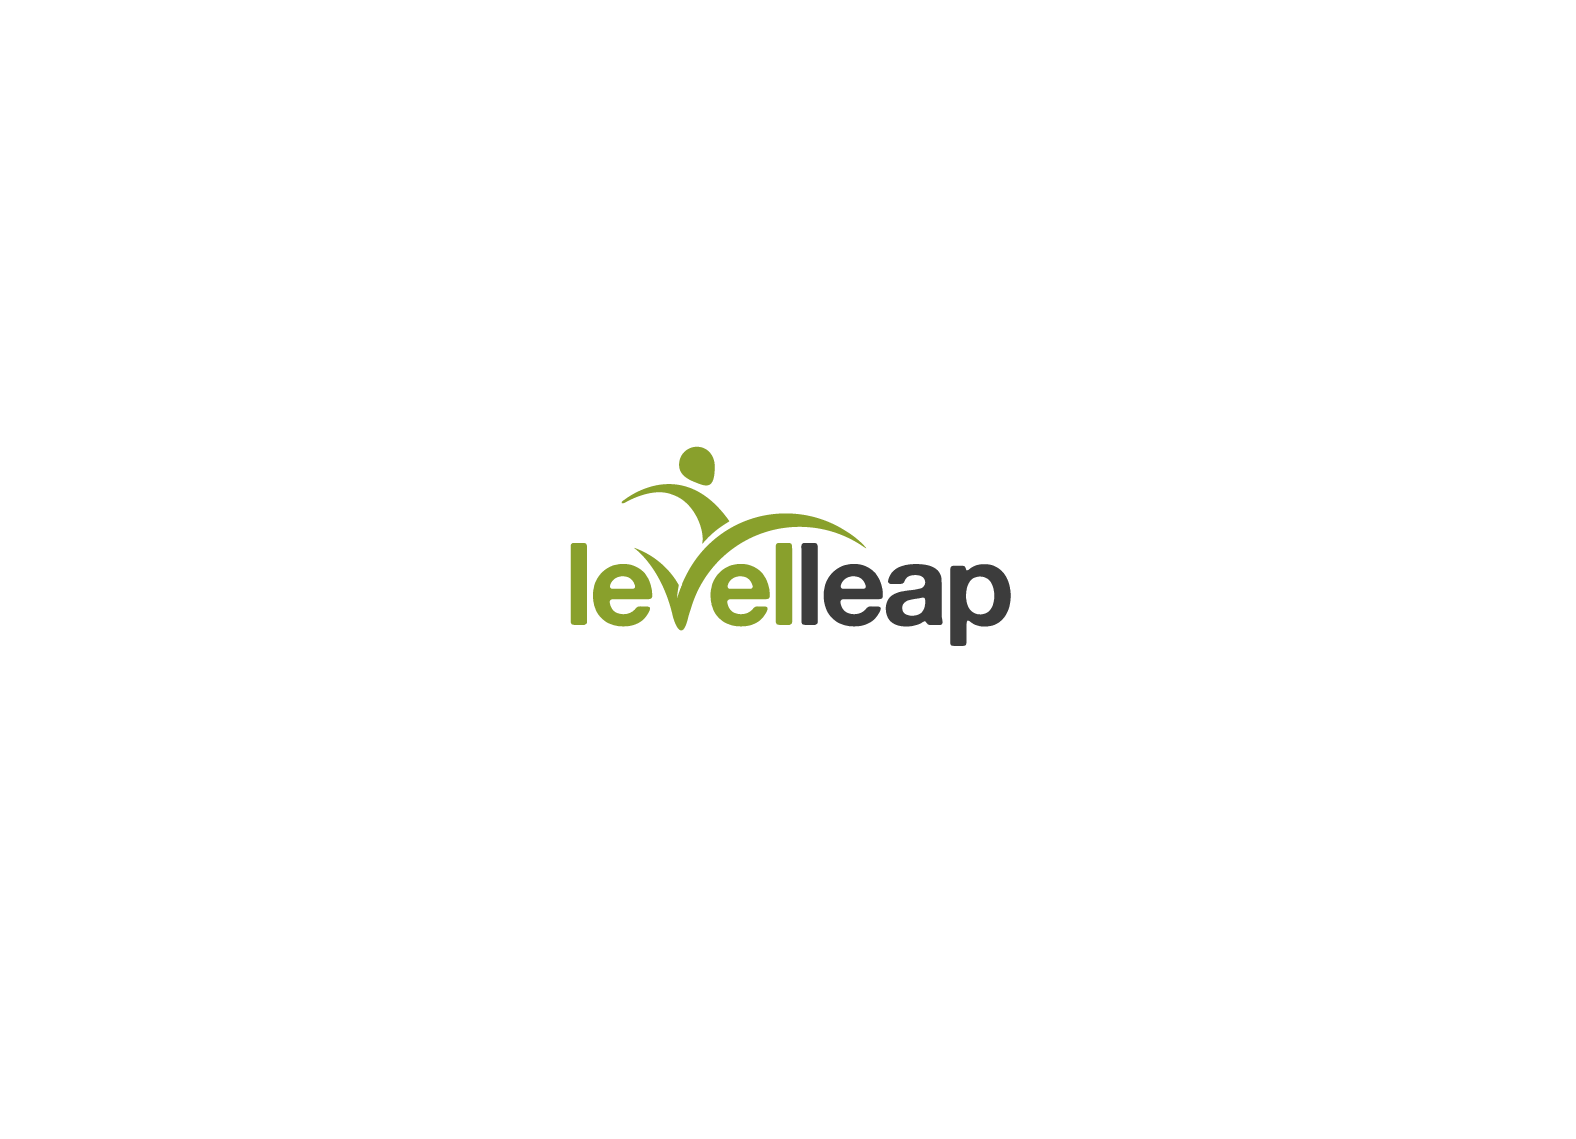 Help level leap with a new logo